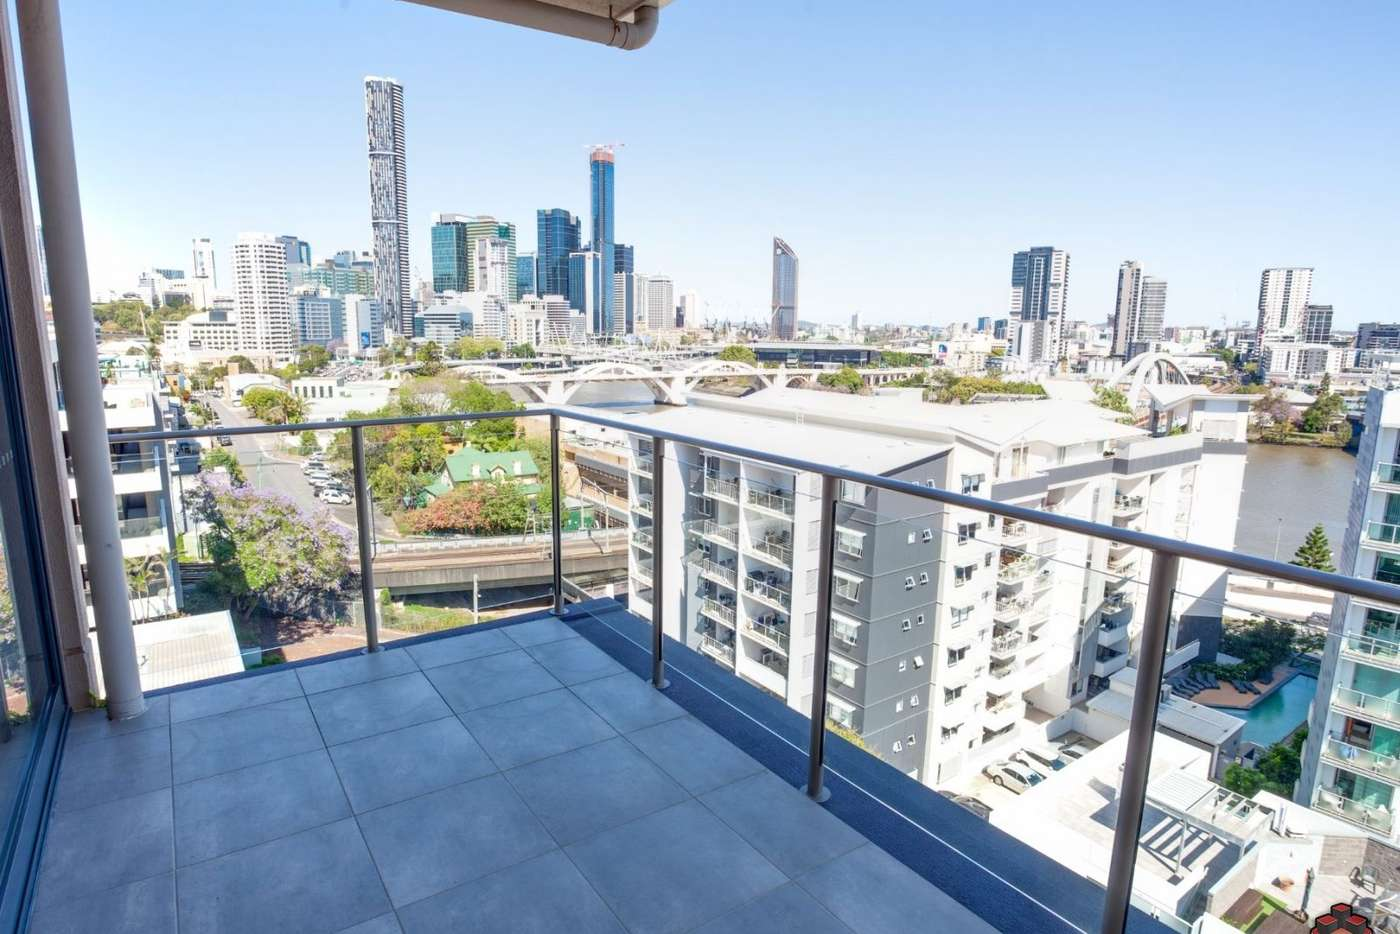 Main view of Homely apartment listing, ID:3911812/111 Quay Street, Brisbane City QLD 4000